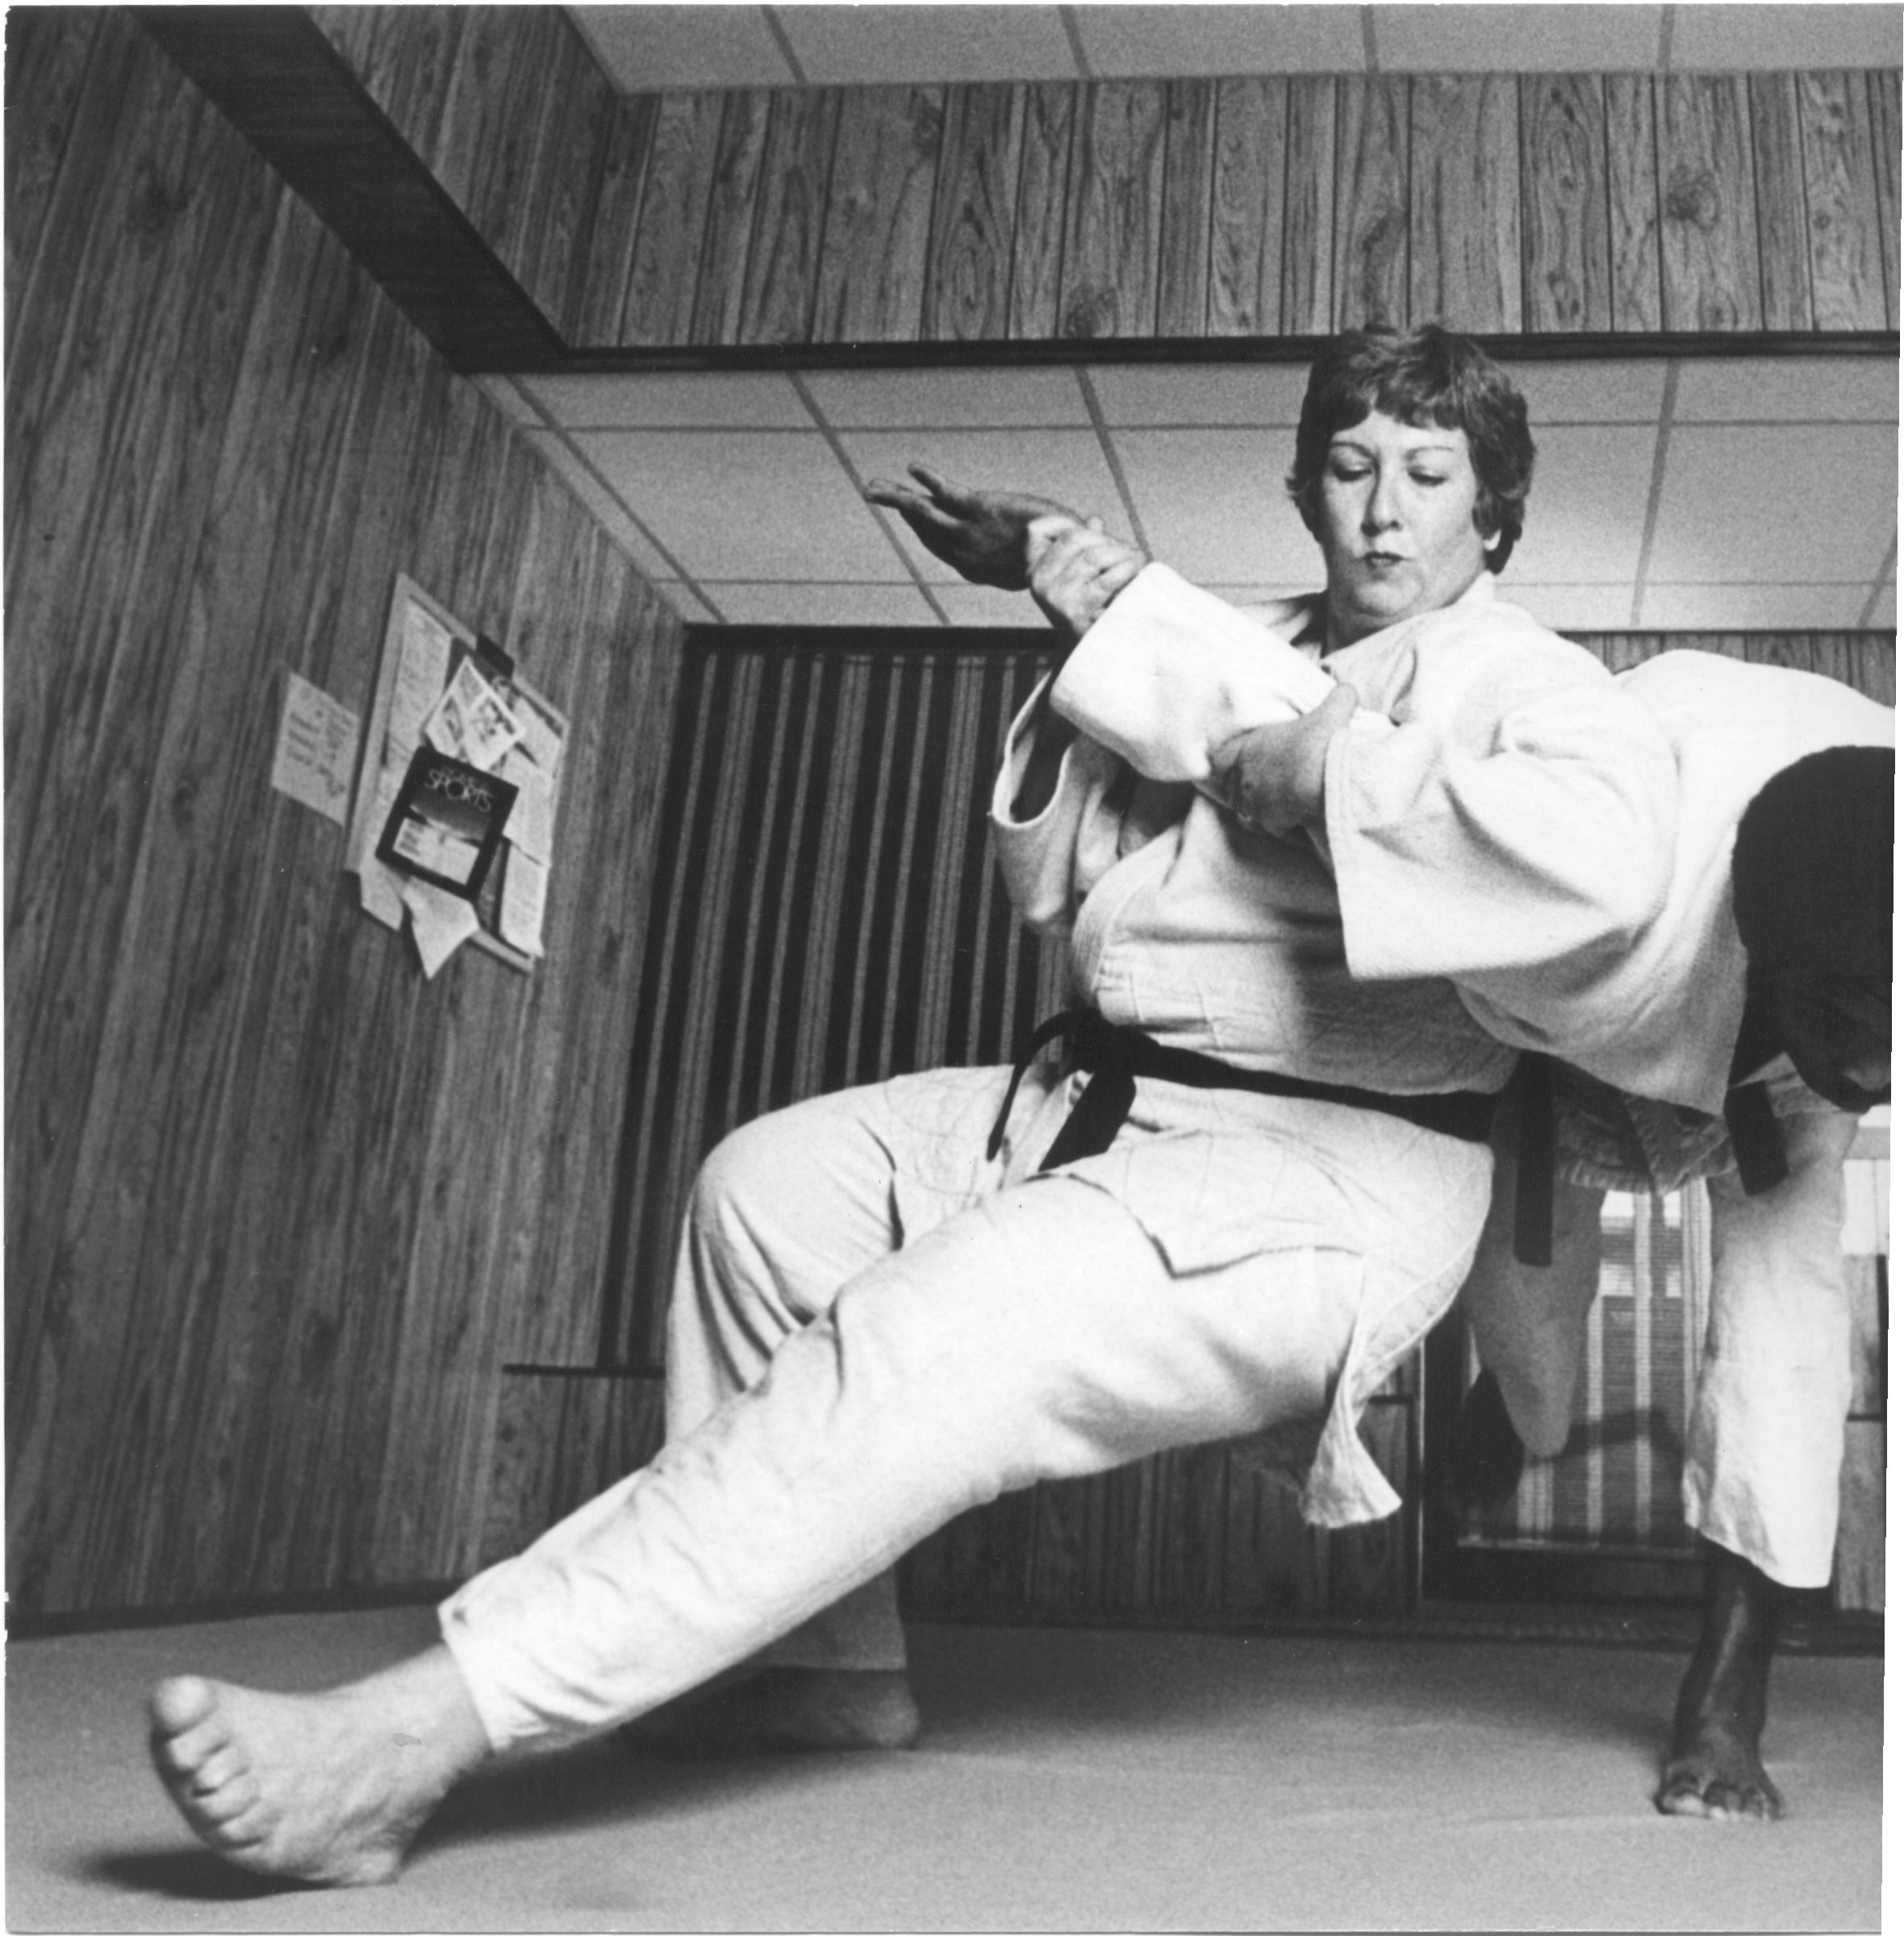 """Rena Glickman Kanokogi, known as """"Rusty,"""" died of cancer in Brooklyn, NY, on November 21, 2009 at the age of 74. She fought for many years to have women's judo made an Olympic sport; she was in Seoul, South Korea, as coach of the first U.S. women's team, when that milestone was achieved in 1988. Her efforts to promote women's judo earned her the Order of the Rising Sun, Japan's highest honor for a foreigner, a year before her death."""